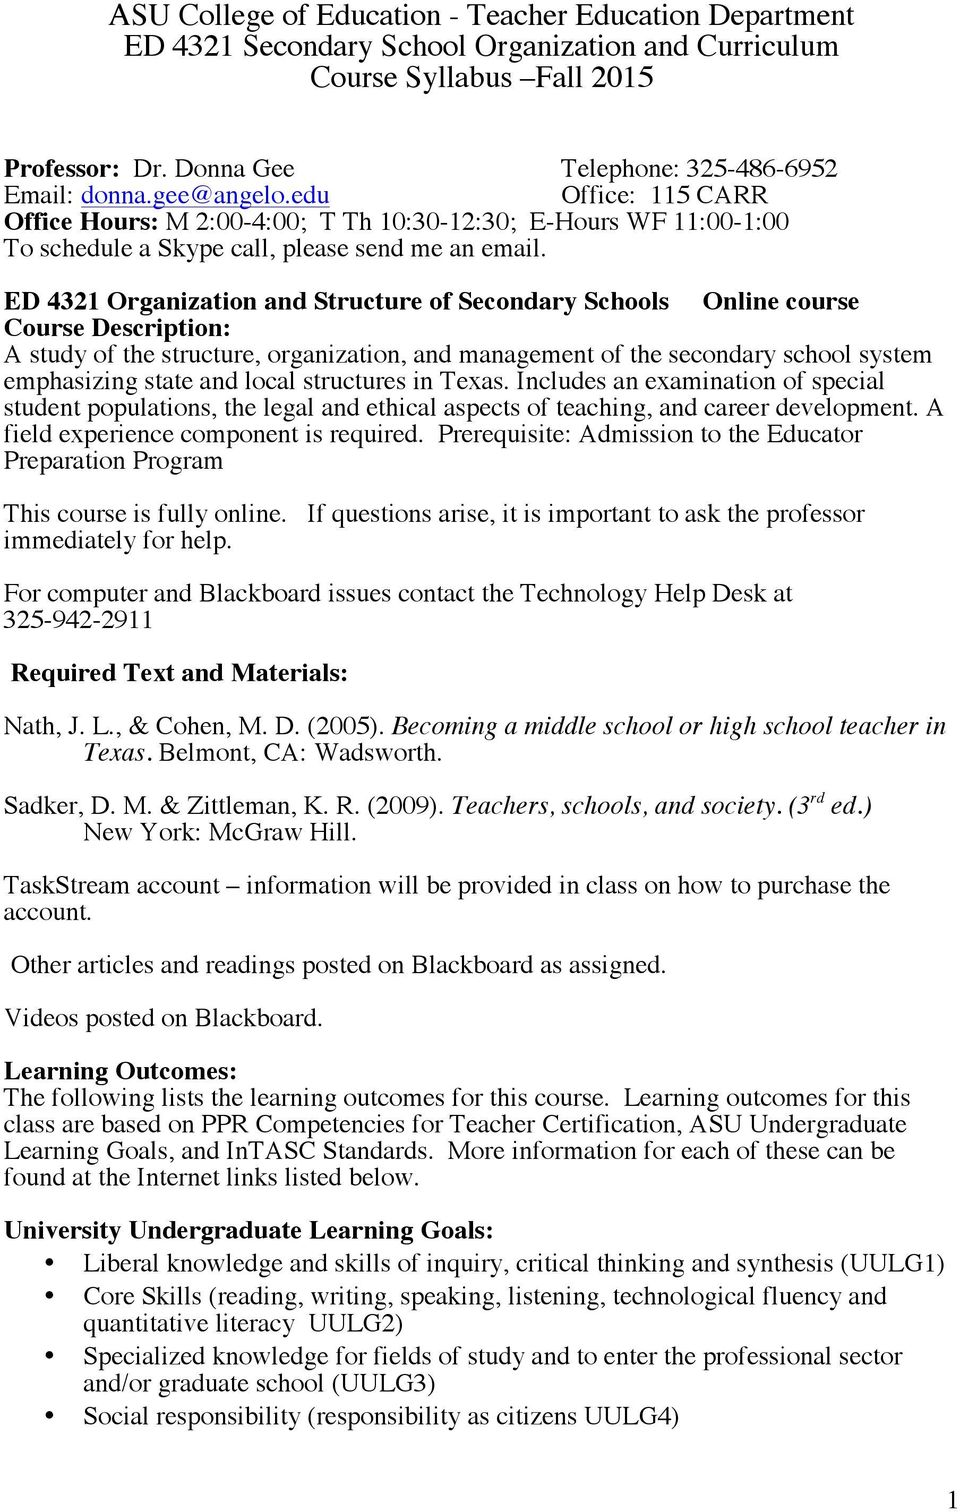 ED 4321 Organization and Structure of Secondary Schools Online course Course Description: A study of the structure, organization, and management of the secondary school system emphasizing state and